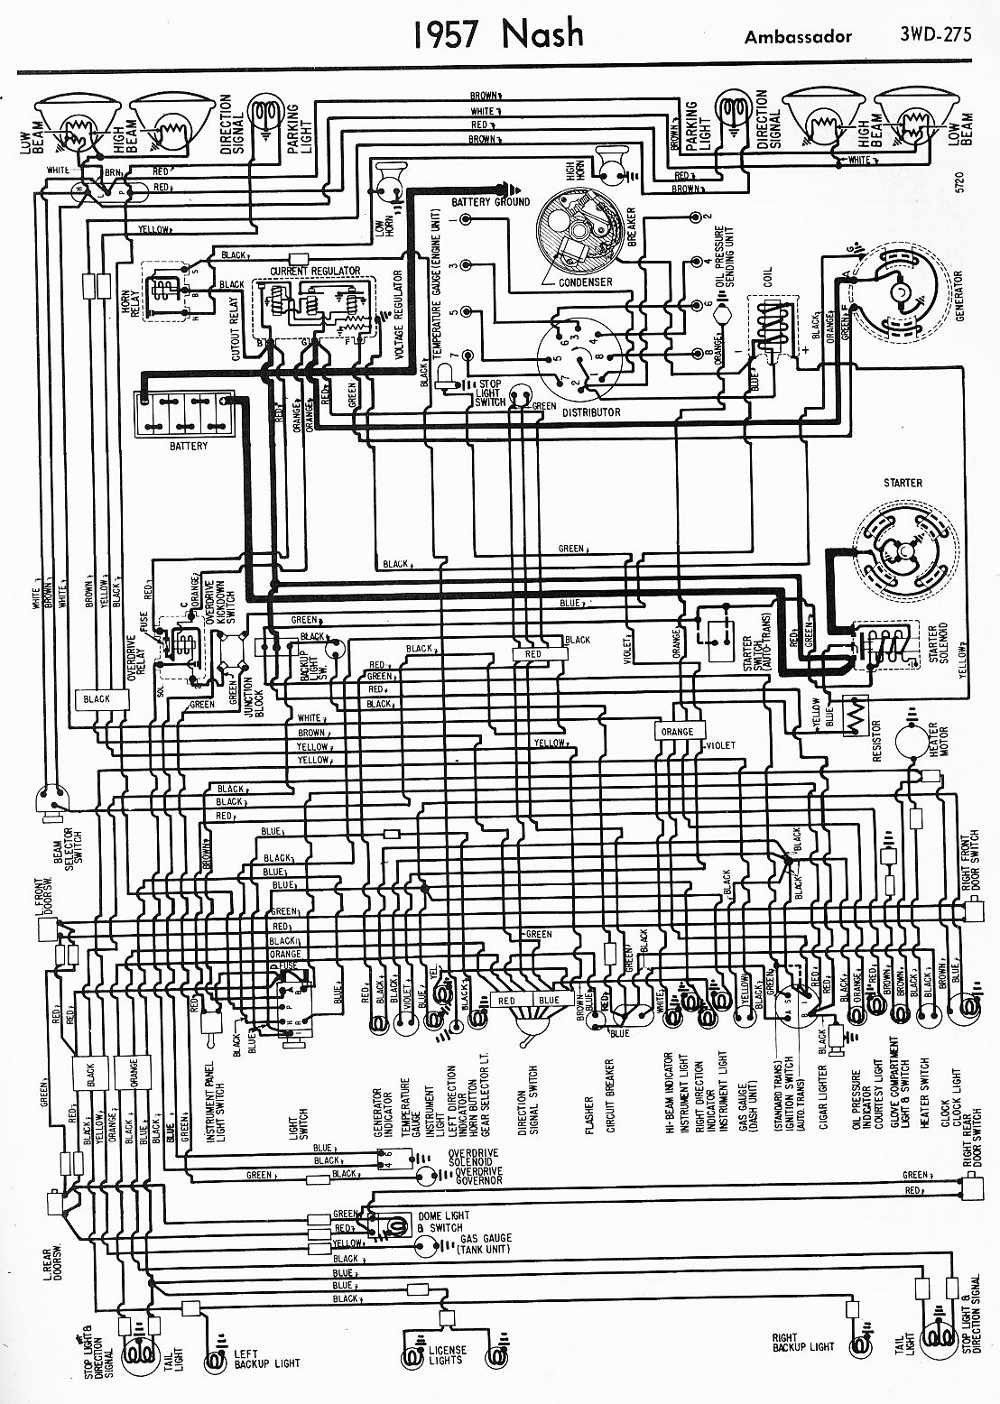 small resolution of 1950 hudson wiring diagram wiring diagram nash metropolitan wiring harness metropolitan nash color wiring diagram